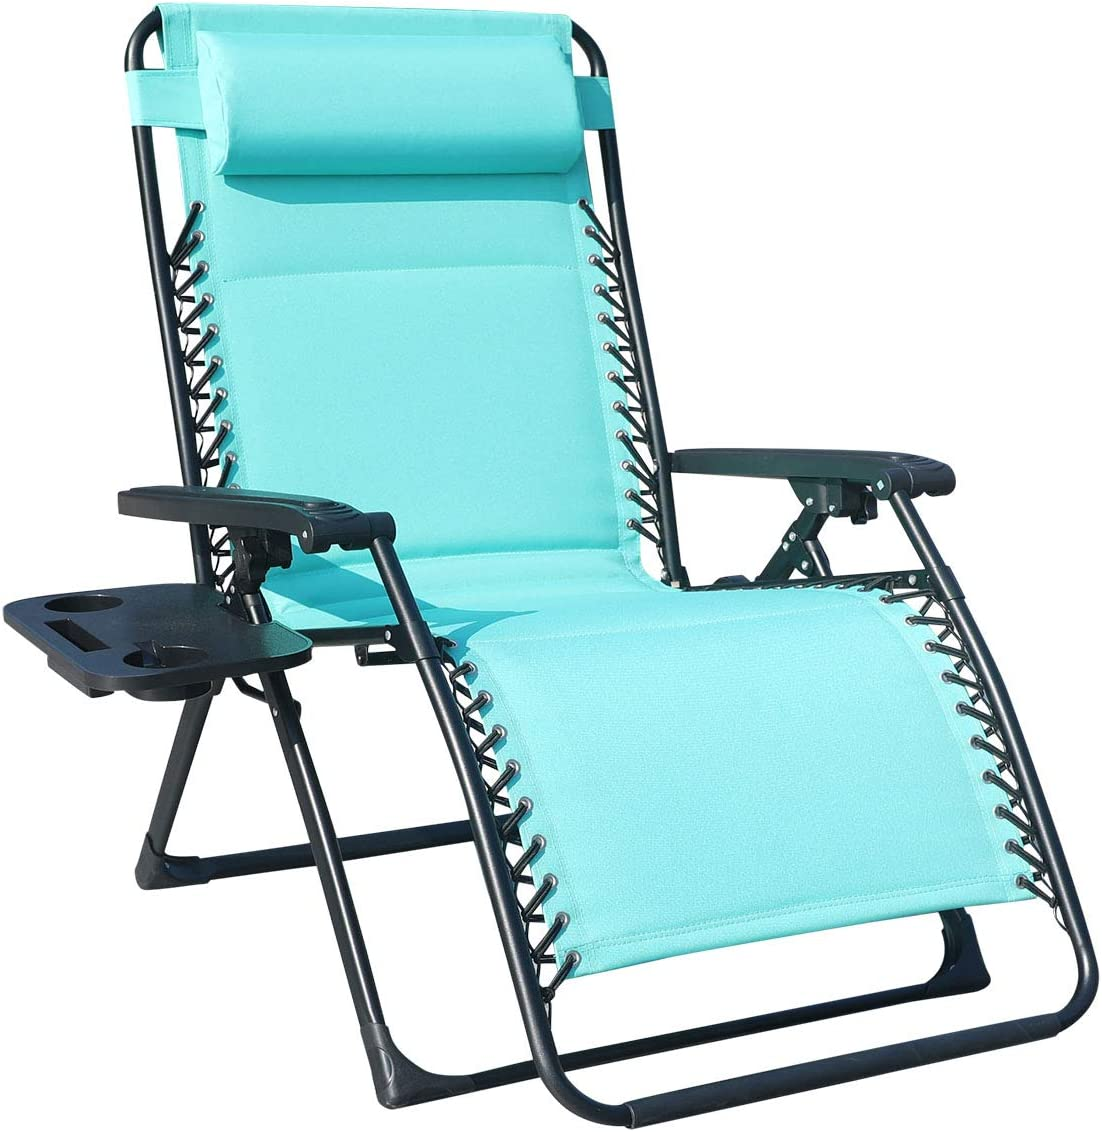 GOLDSUN Oversized Zero Gravity Chair Reviews